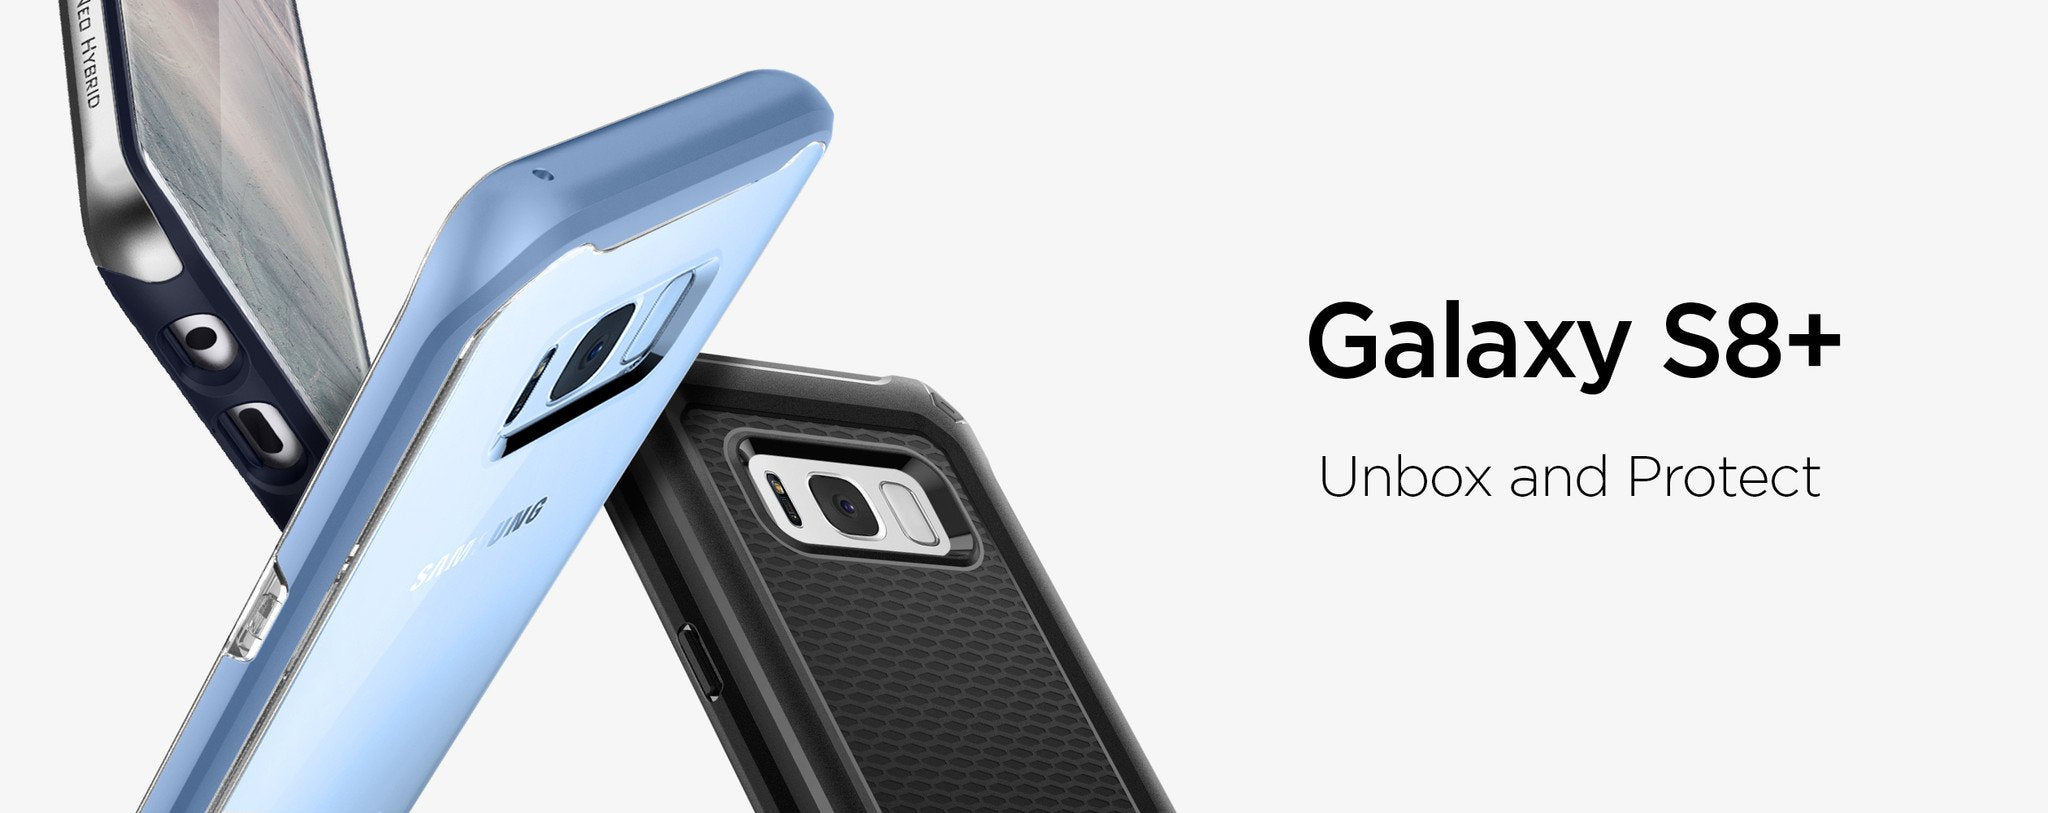 s8 Plus cases covers and accessories in pakistan